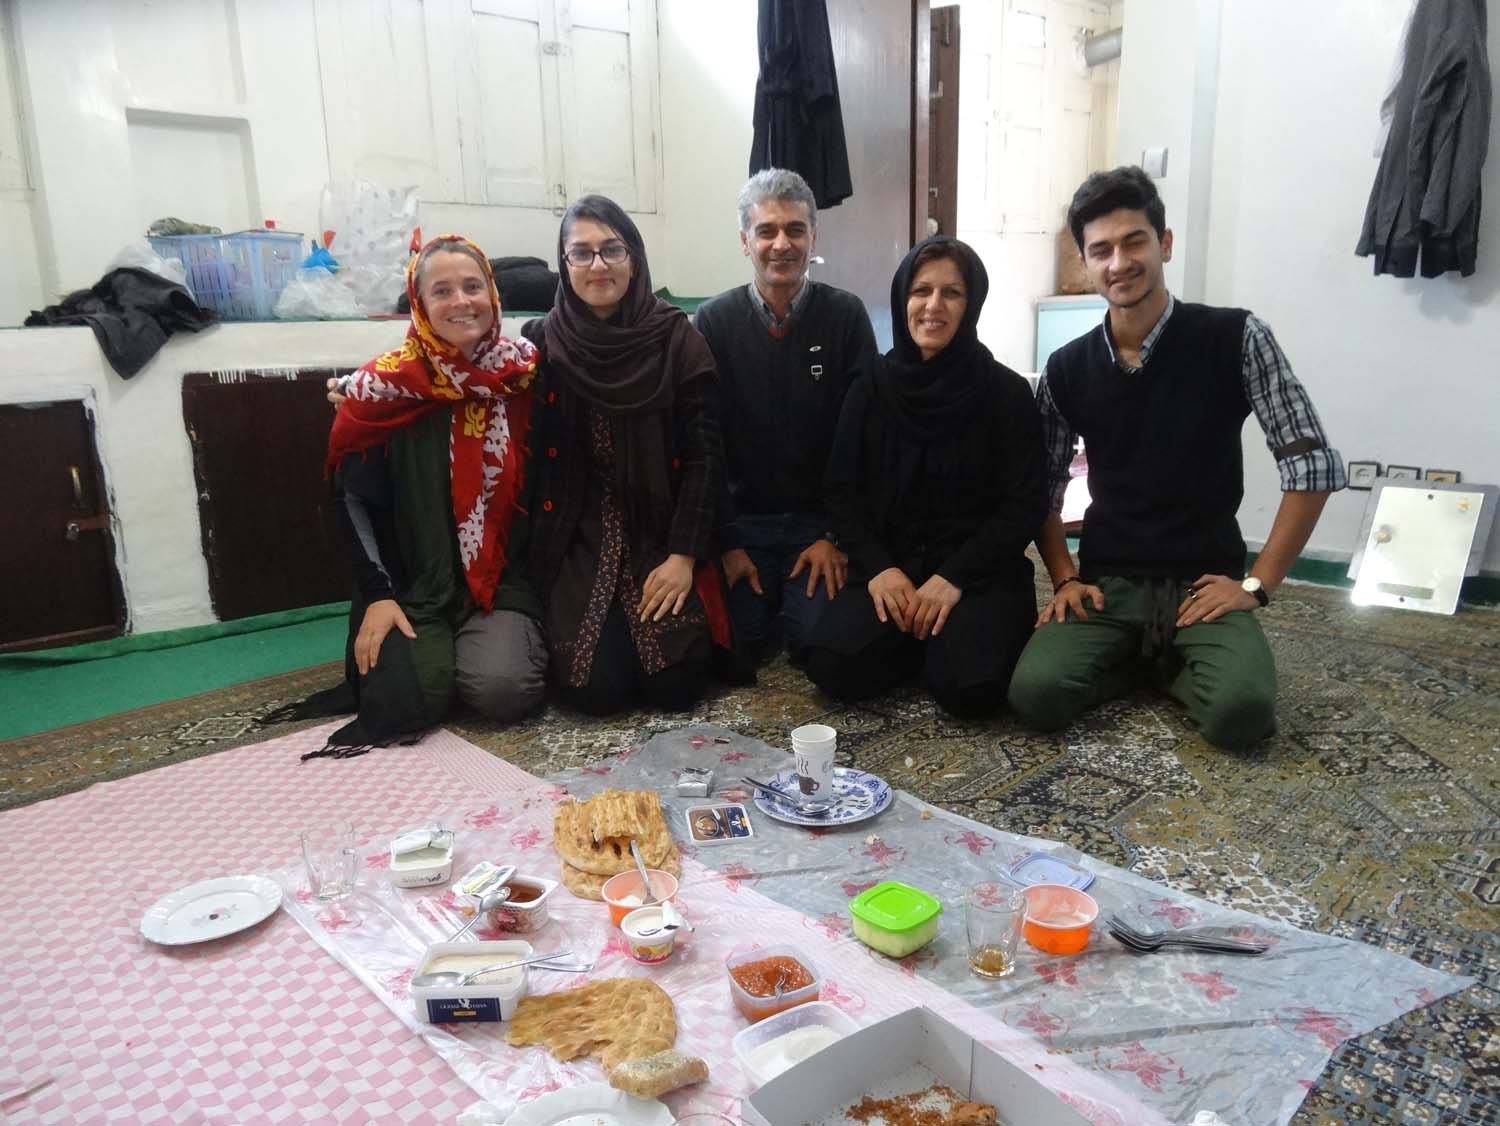 not long after we are joining Assa, Mohammad and their parents for a second breakfast